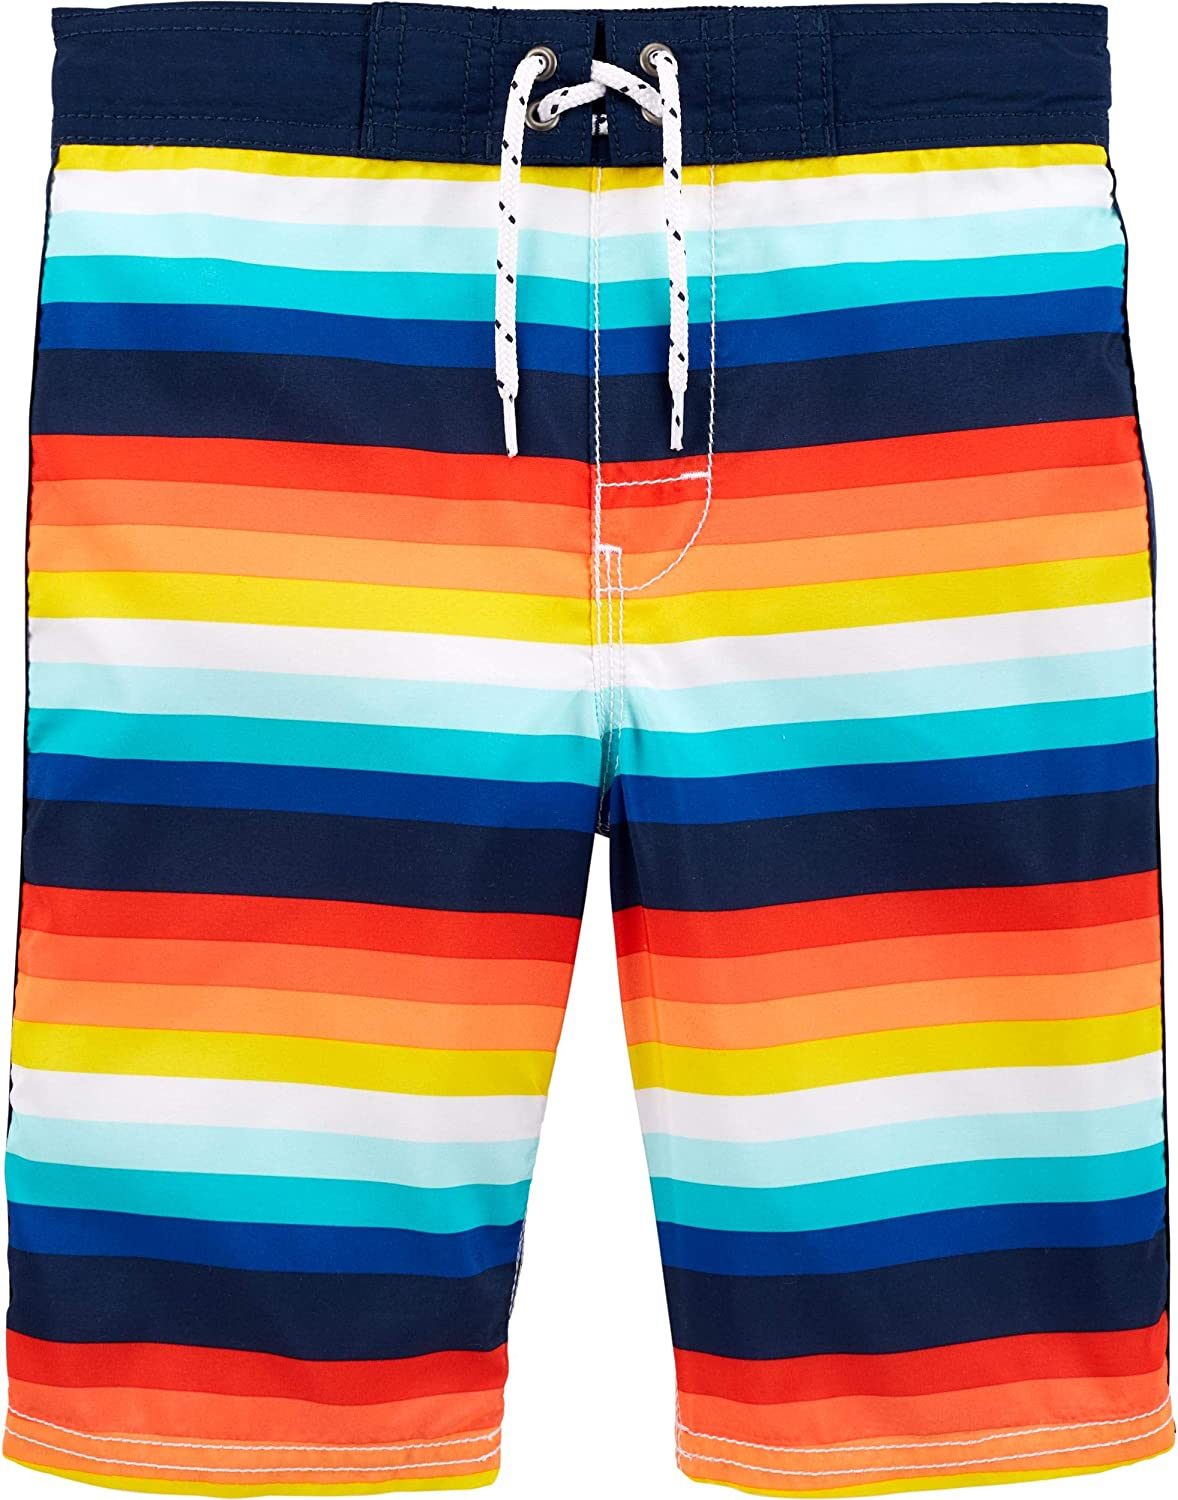 OshKosh BGosh Boys Swim Trunks